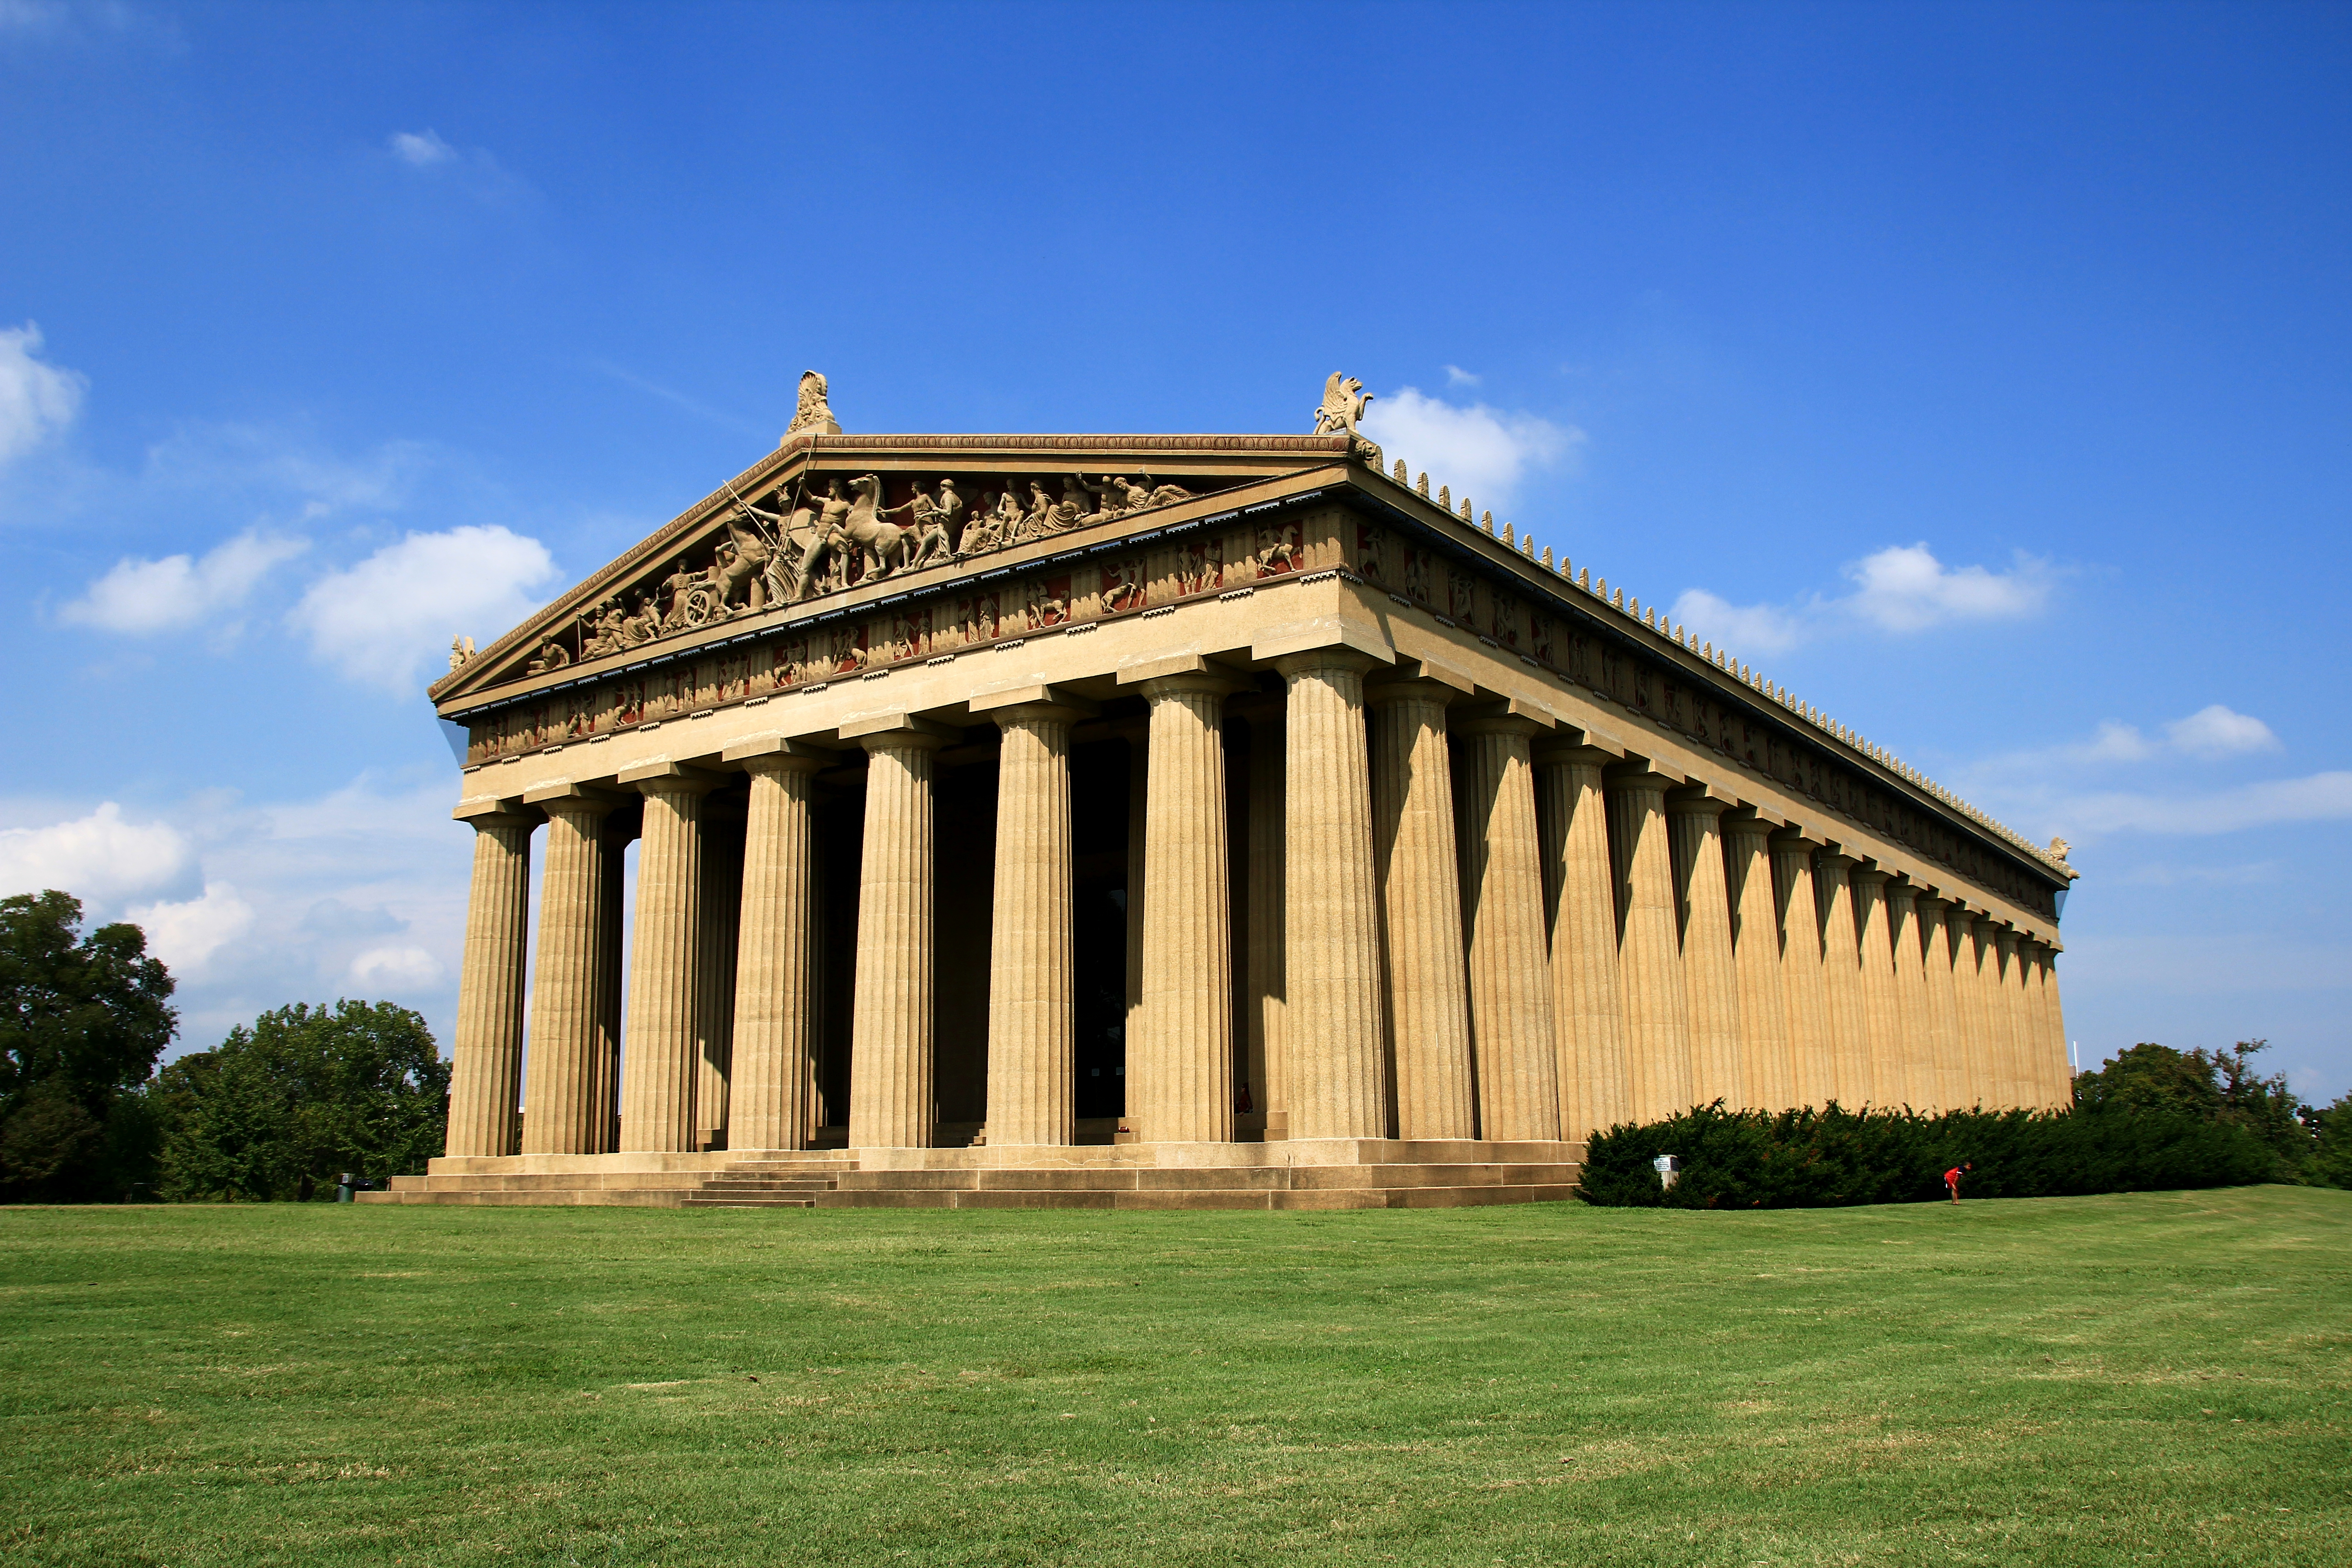 parthenon vs pantheon The similarities and differences between the parthenon, on which work was completed in around 432 bce in the greek city-state of athens, and the.